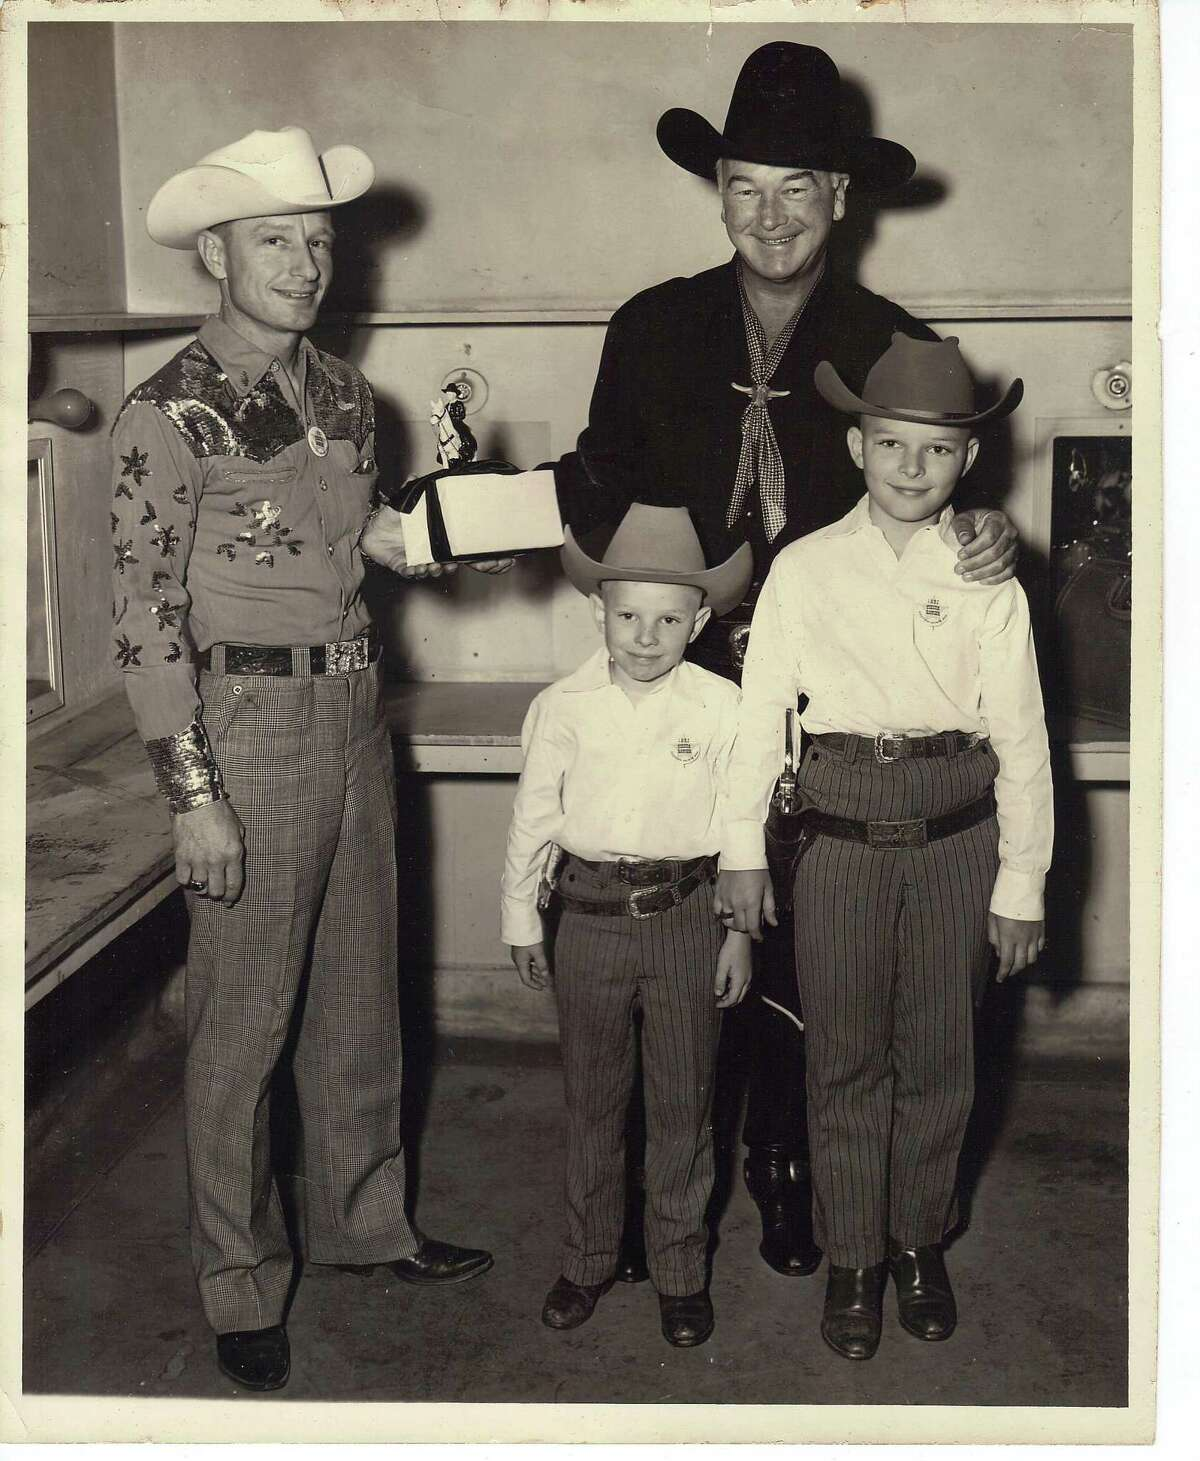 San Antonio's Municipal Auditorium hosted many shows that attracted fans of country-western music. At a Fiesta event, April 19, 1952, Del Dunbar, right, sang with the Texas Star Playboys. Backstage, he introduced his sons Bruce, left, and Errol to TV's Hopalong Cassidy, played by William Boyd, who gave out awards for a children's costume contest